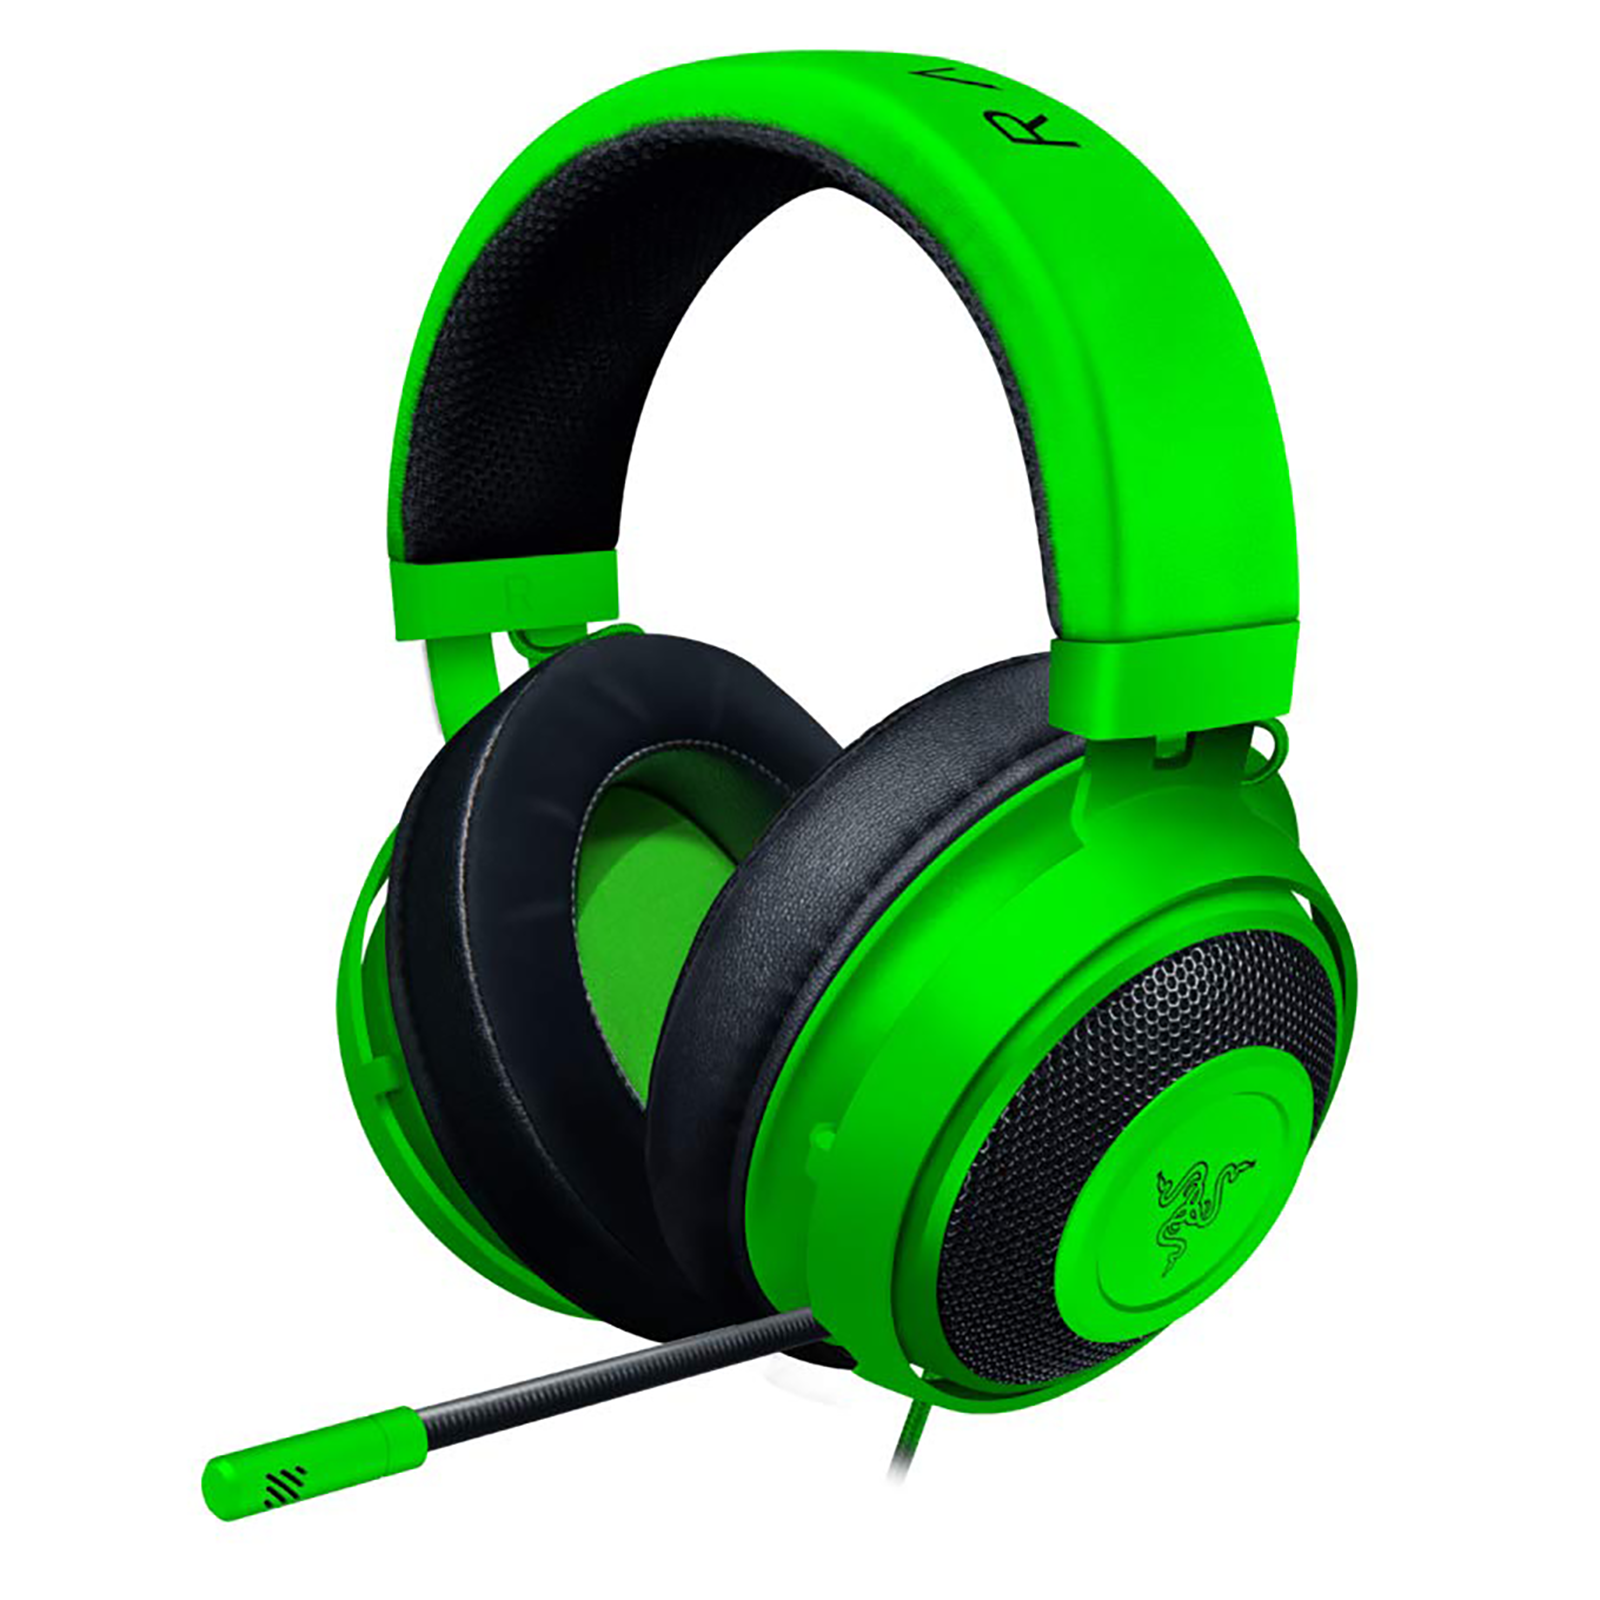 Razer Kraken Over-Ear Wired Gaming Headset with Mic (Clear & Powerful Sound, RZ04-02830200-R3M1, Green)_1